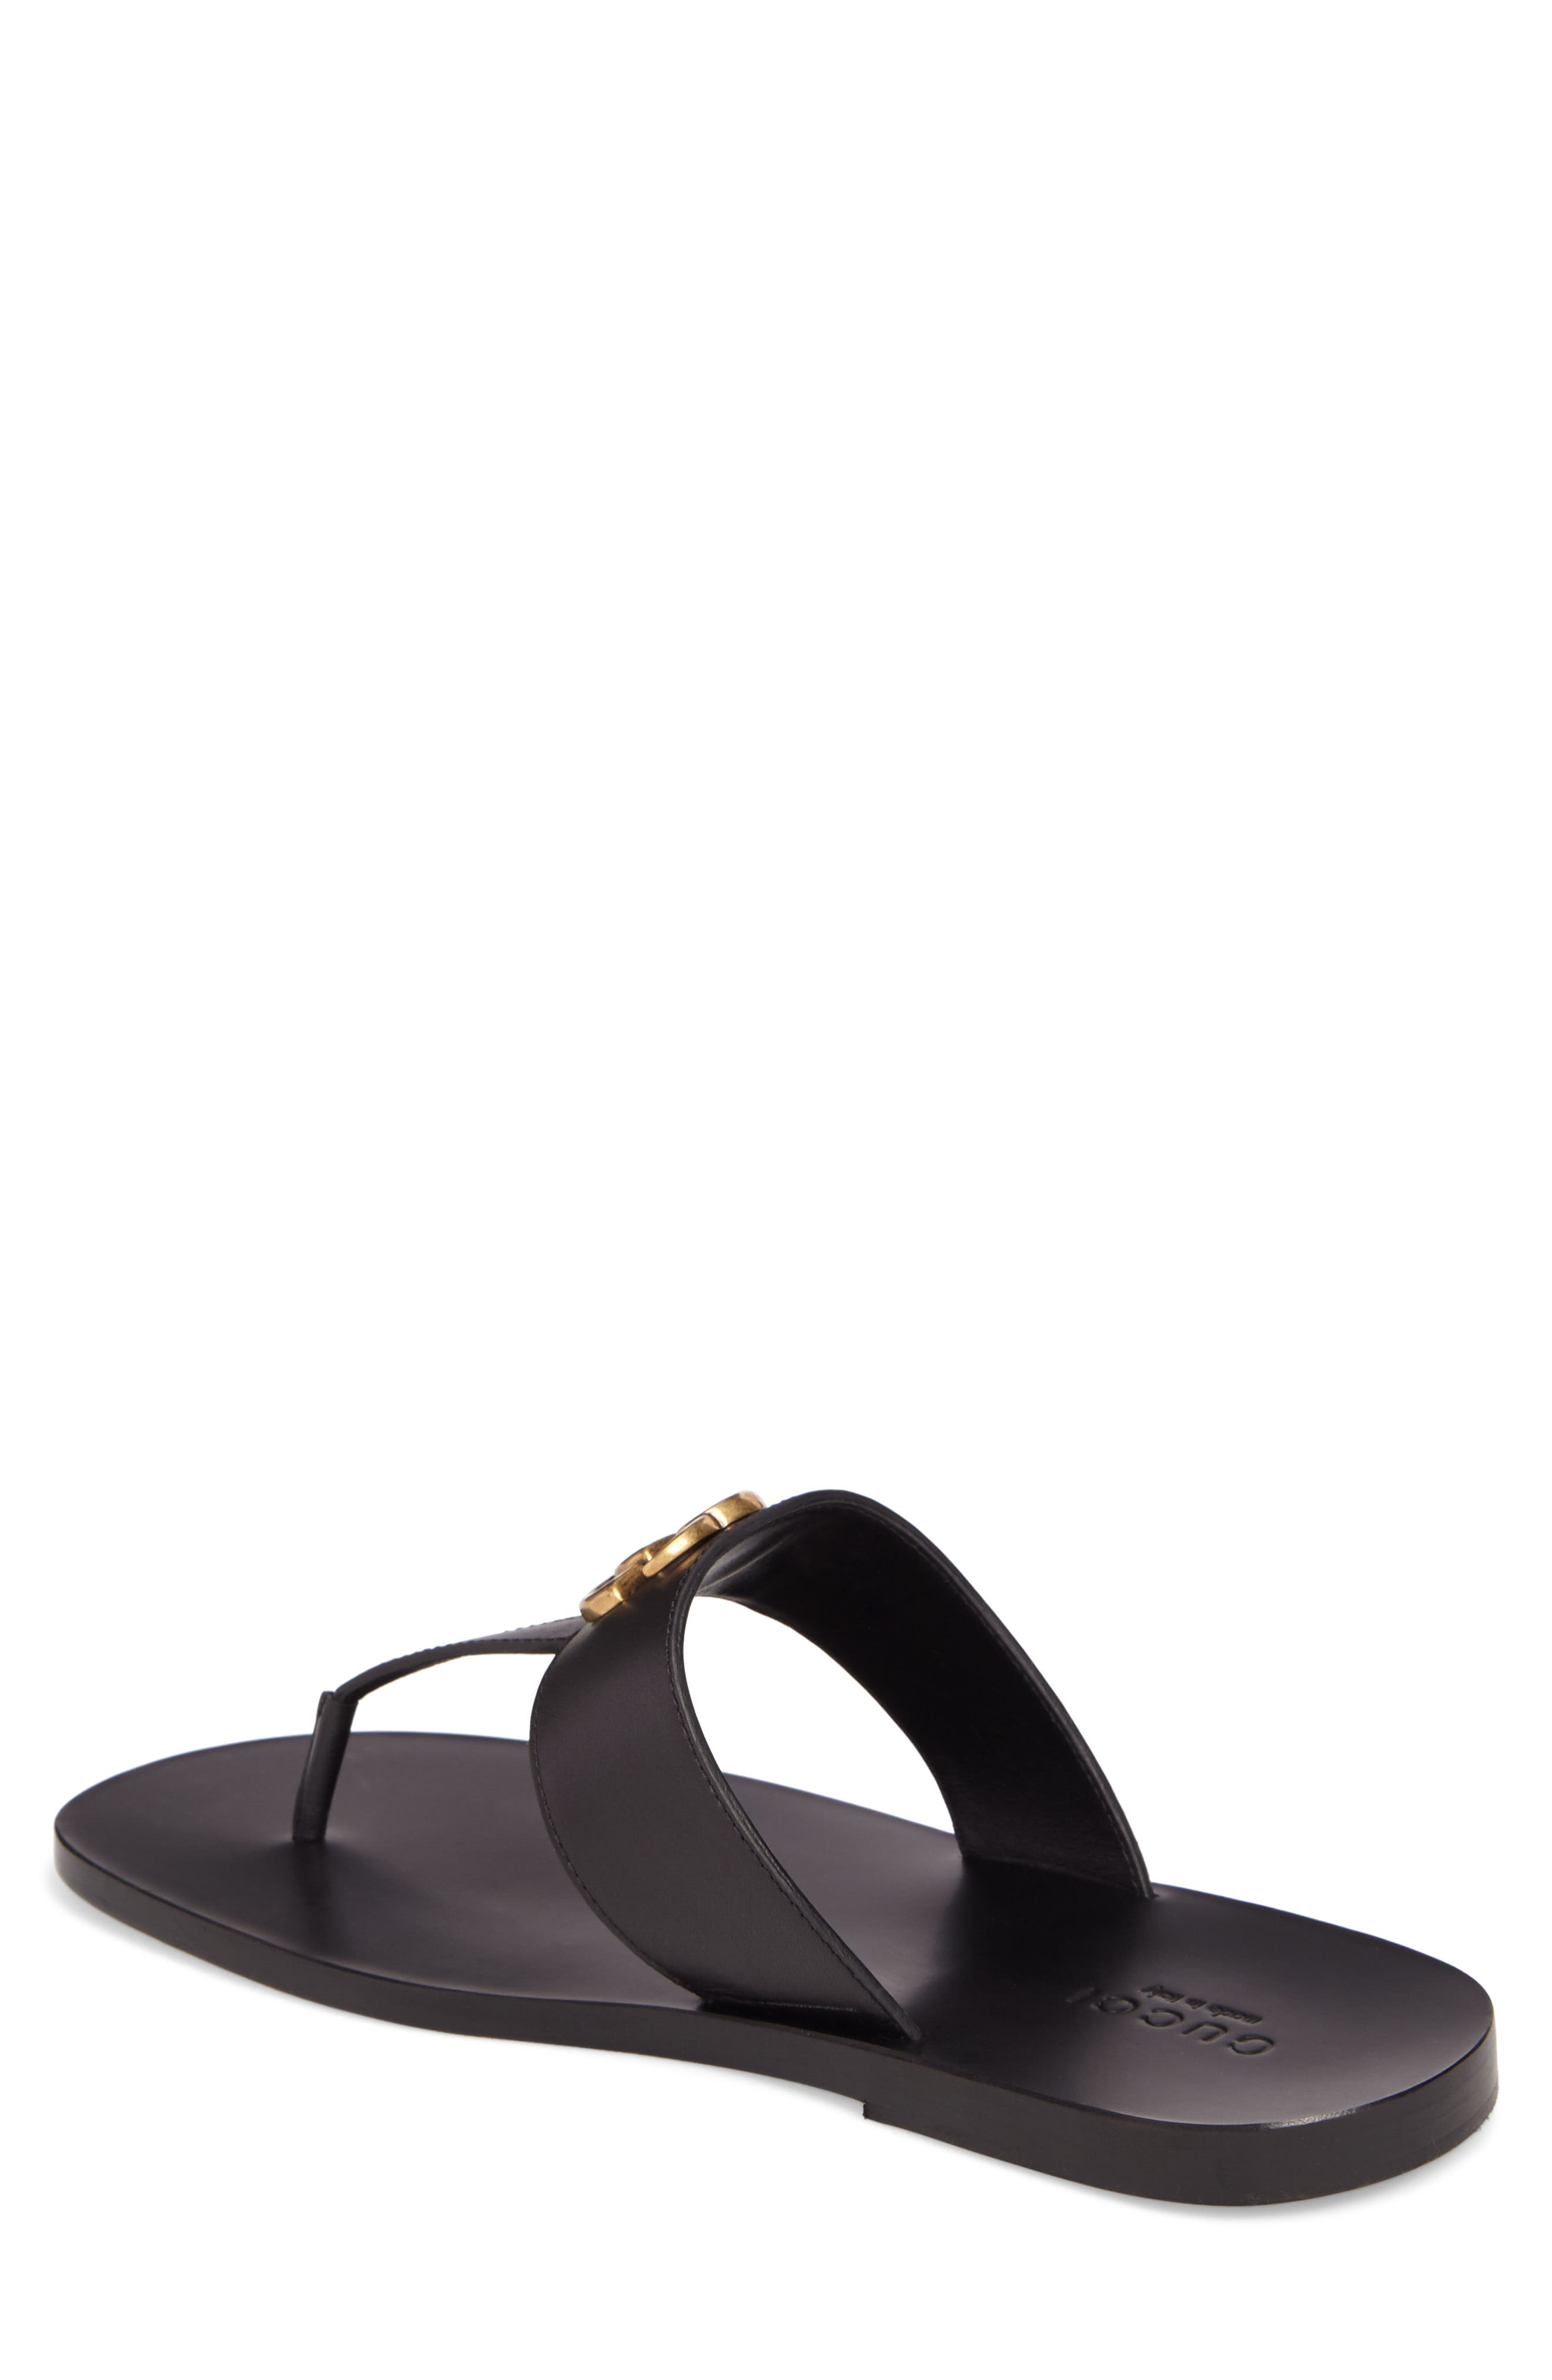 GUCCI, Marmont Double G Leather Thong Sandal, Alternate thumbnail 2, color, BLACK/ GOLD